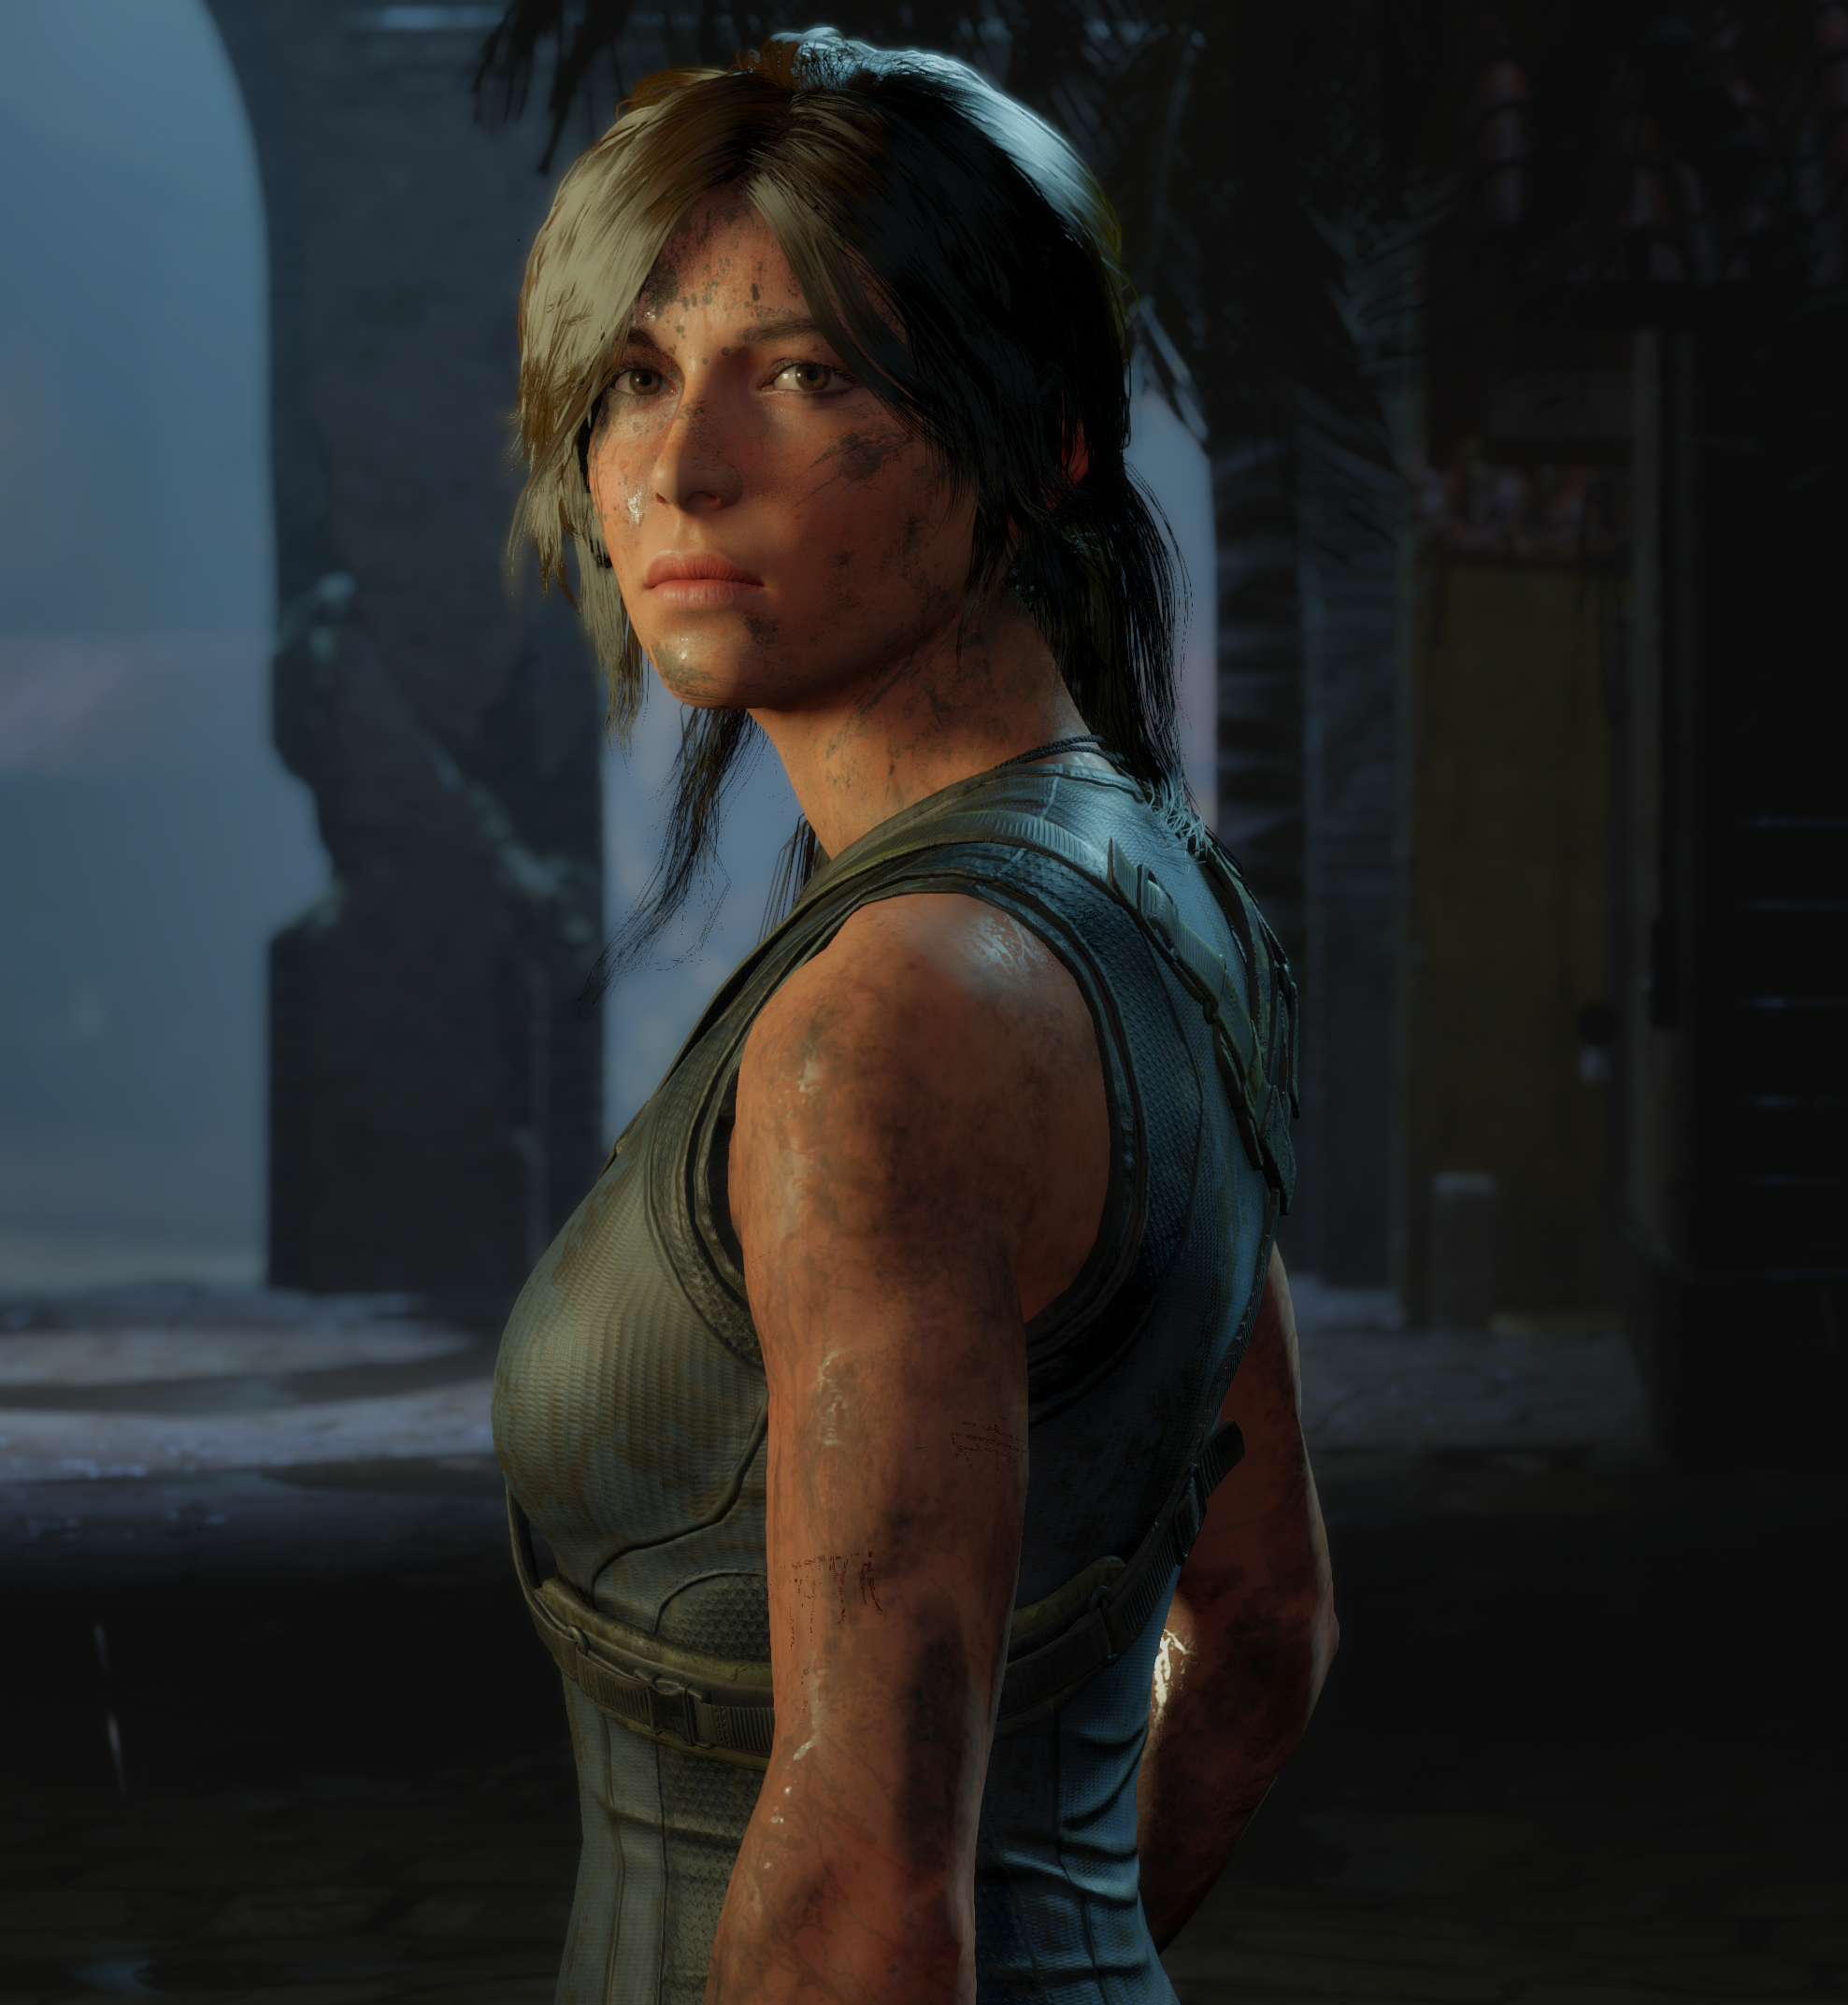 Shadow Of The Tomb Raider At E3 2018 Ansel And Highlights Added